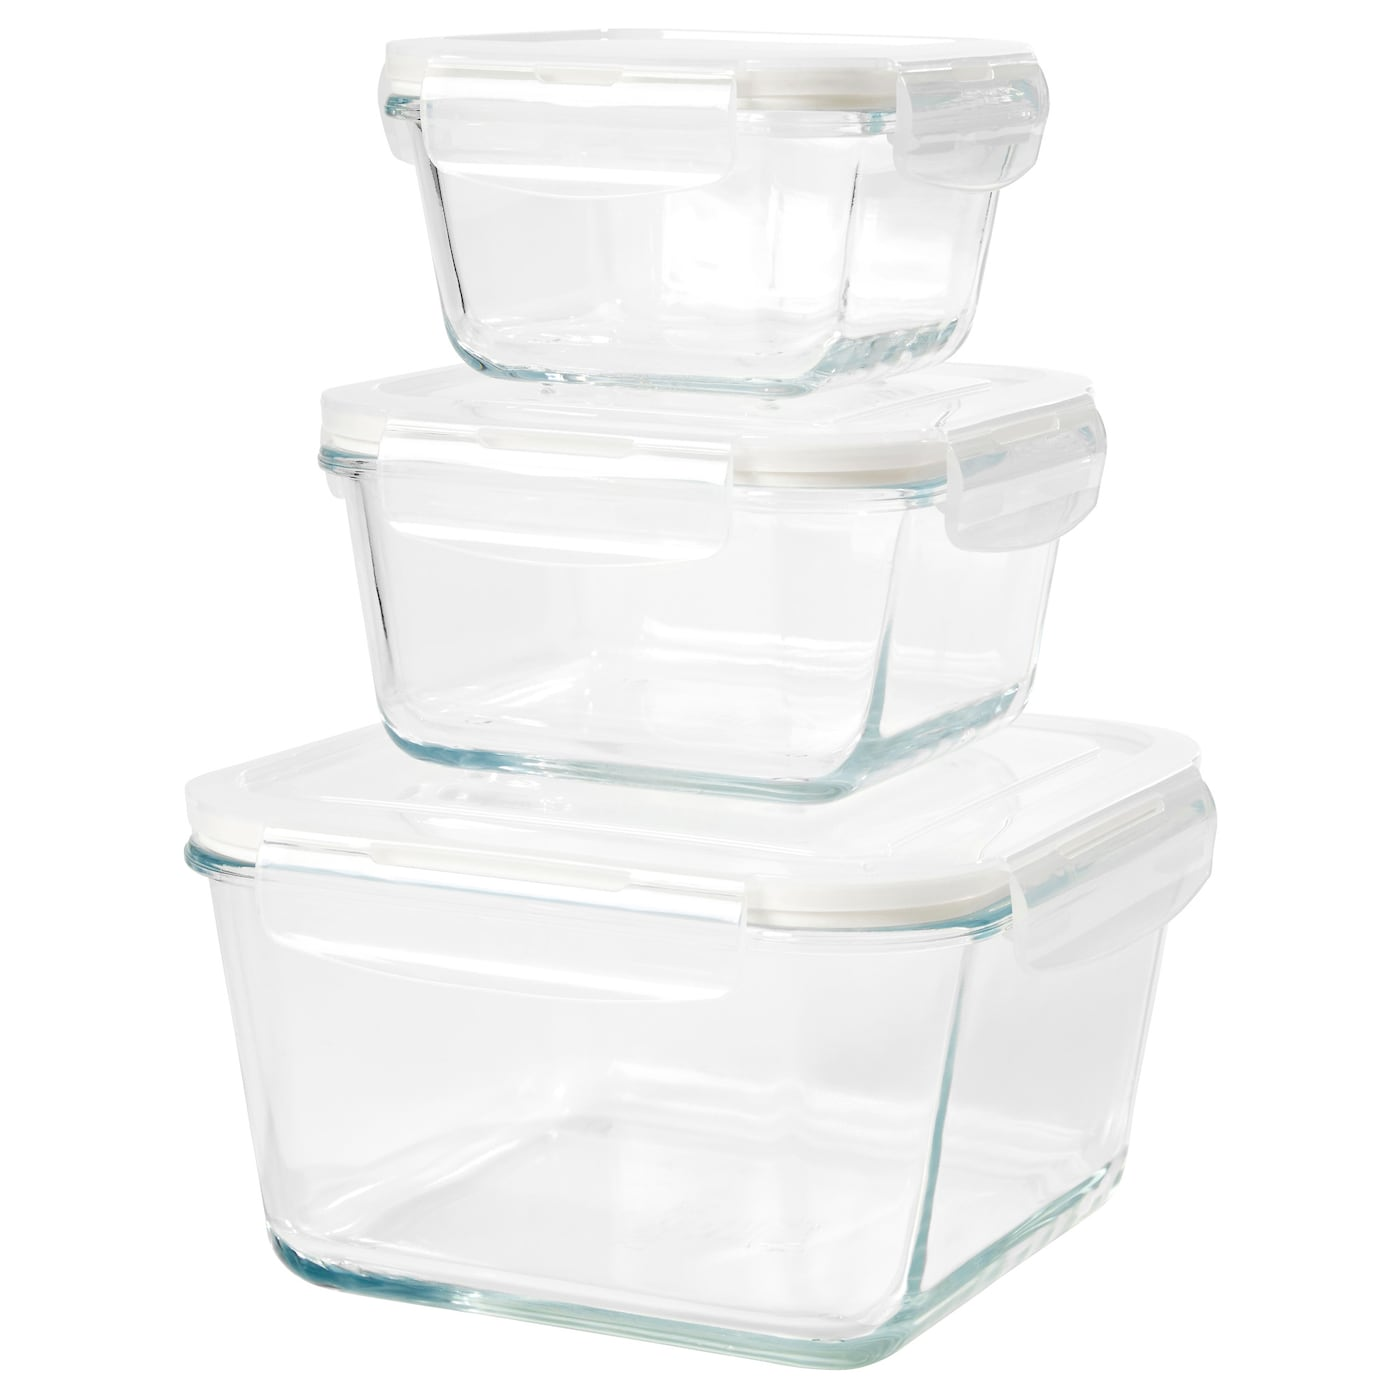 f rtrolig food container set of 3 clear glass ikea